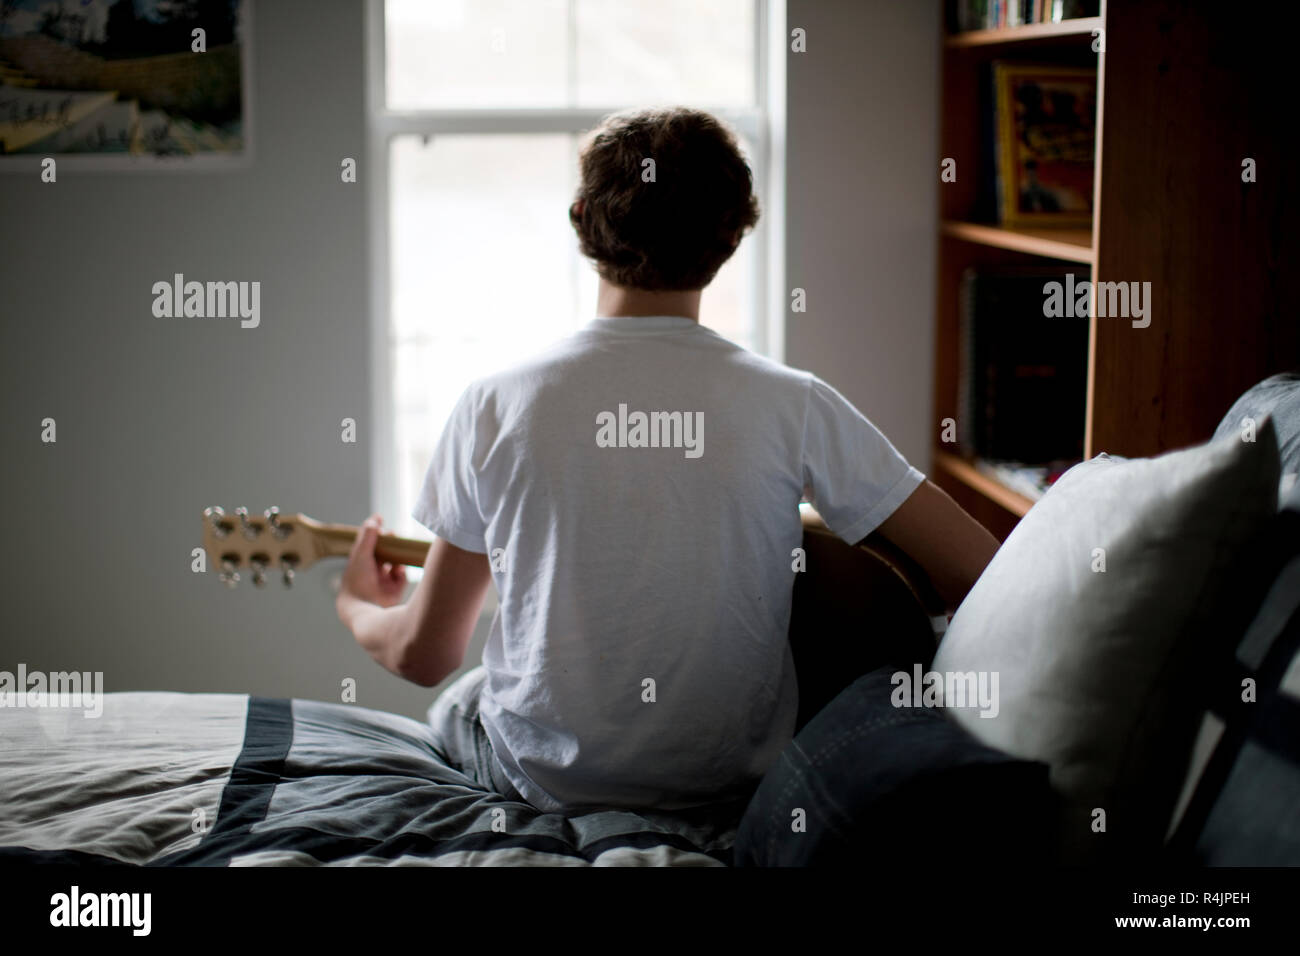 Boy sitting on bed playing guitar. - Stock Image